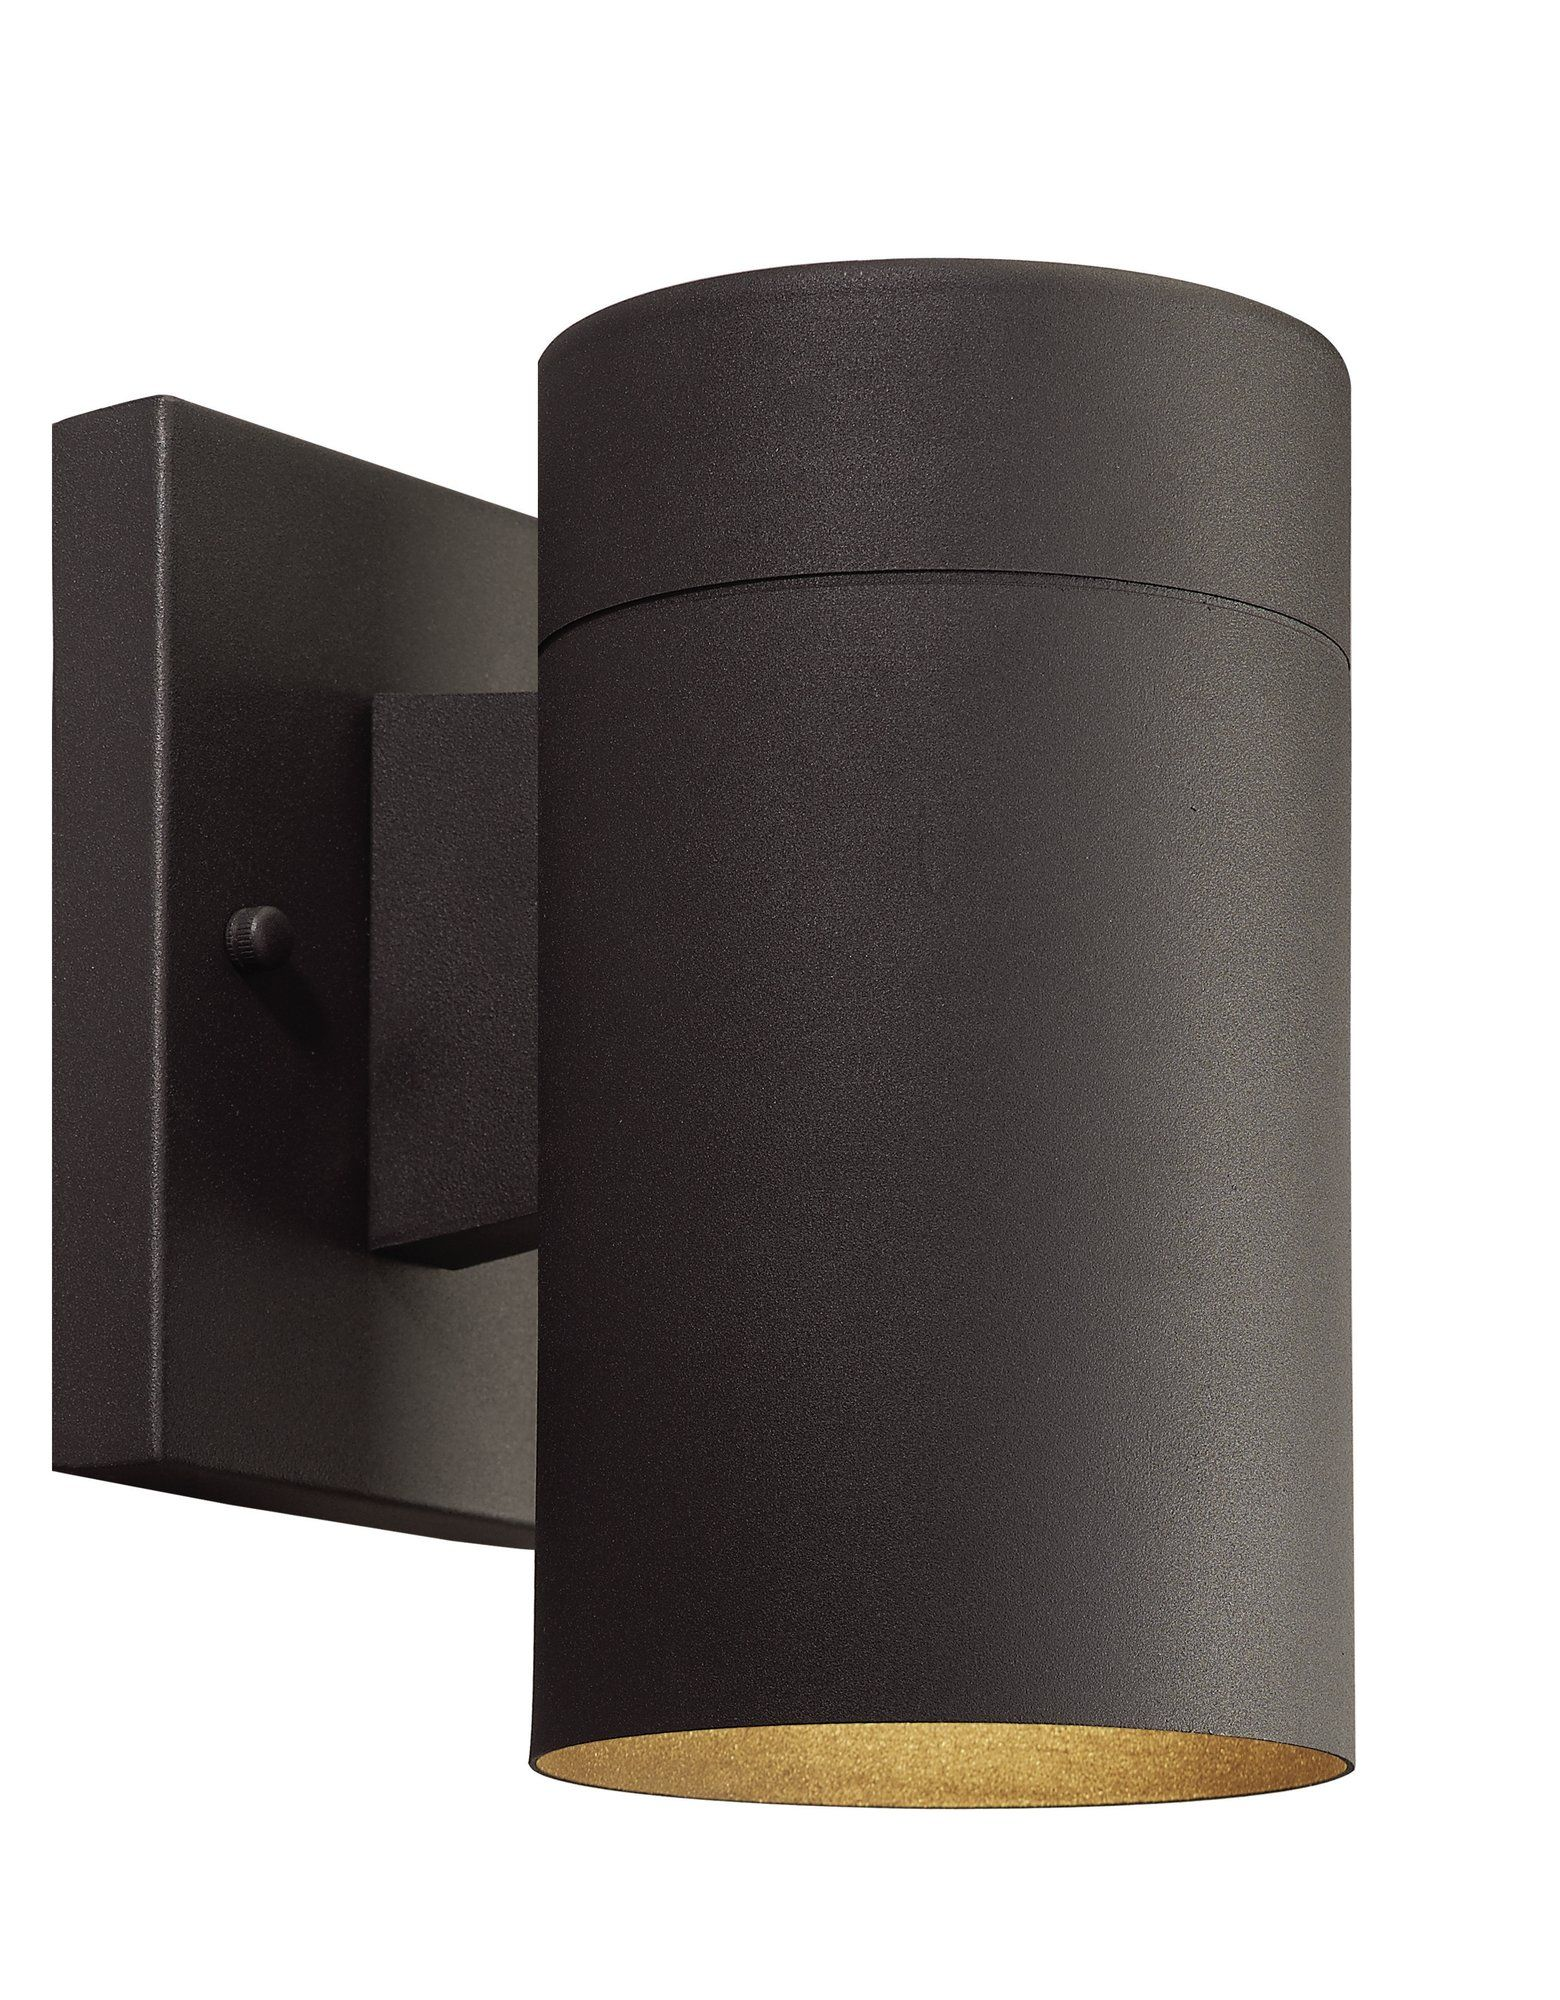 Tergel light outdoor sconce products pinterest products